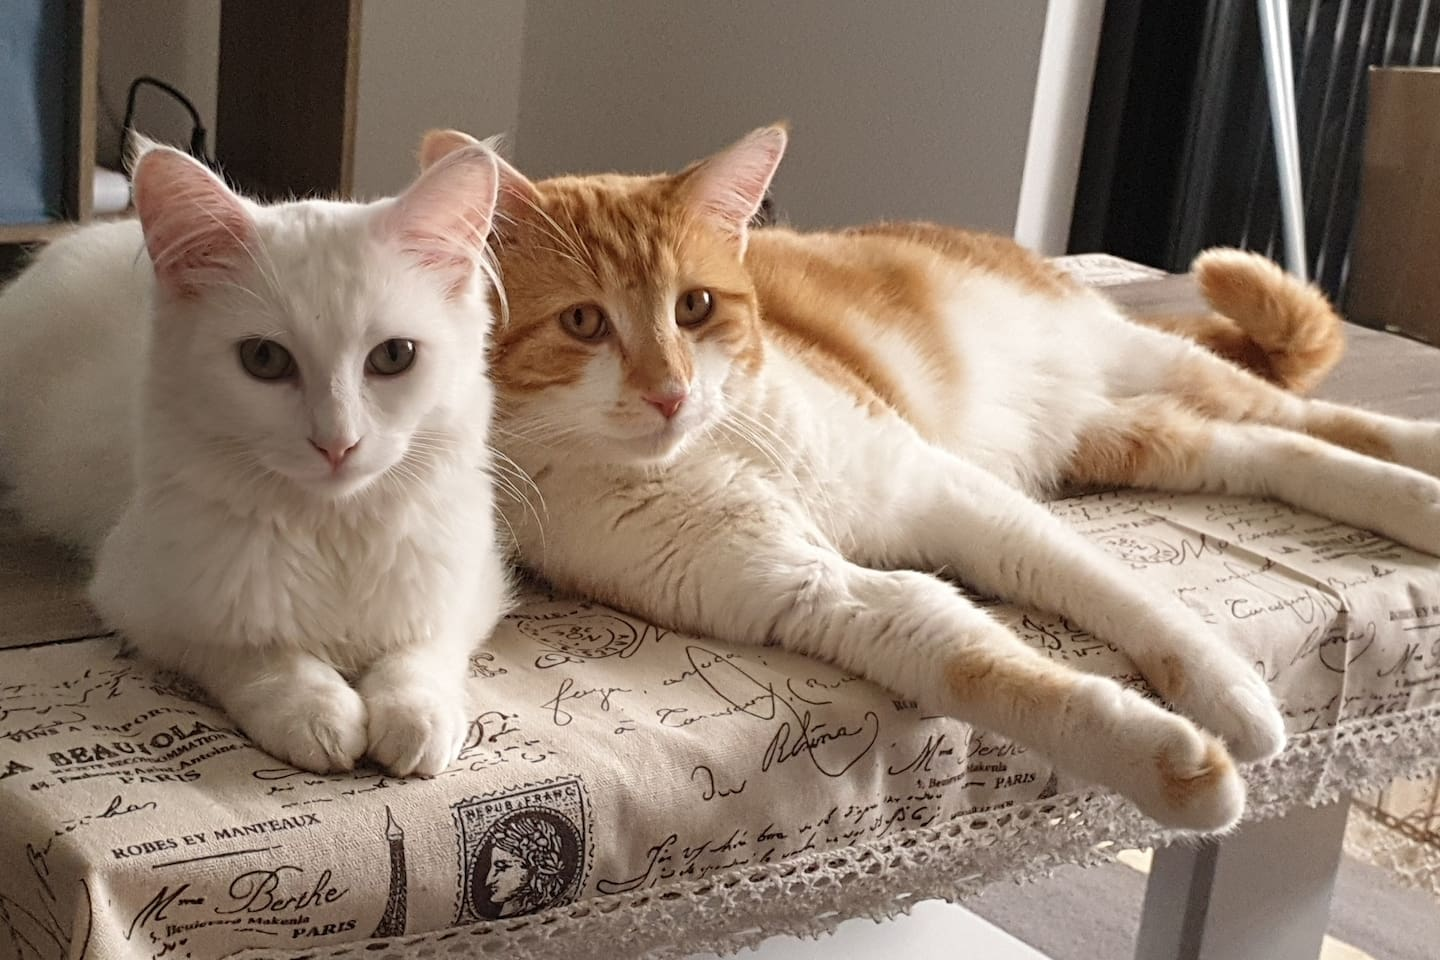 We have 2 lovely cats. We now keep them at balcony for guest's comfort and hygenic.  PLEASE DO NOT BRING THEM INSIDE THE HOUSE.  WE WILL SEND SOMEONE AT 6:30PM everyday to clean their cat litter and to feed them.